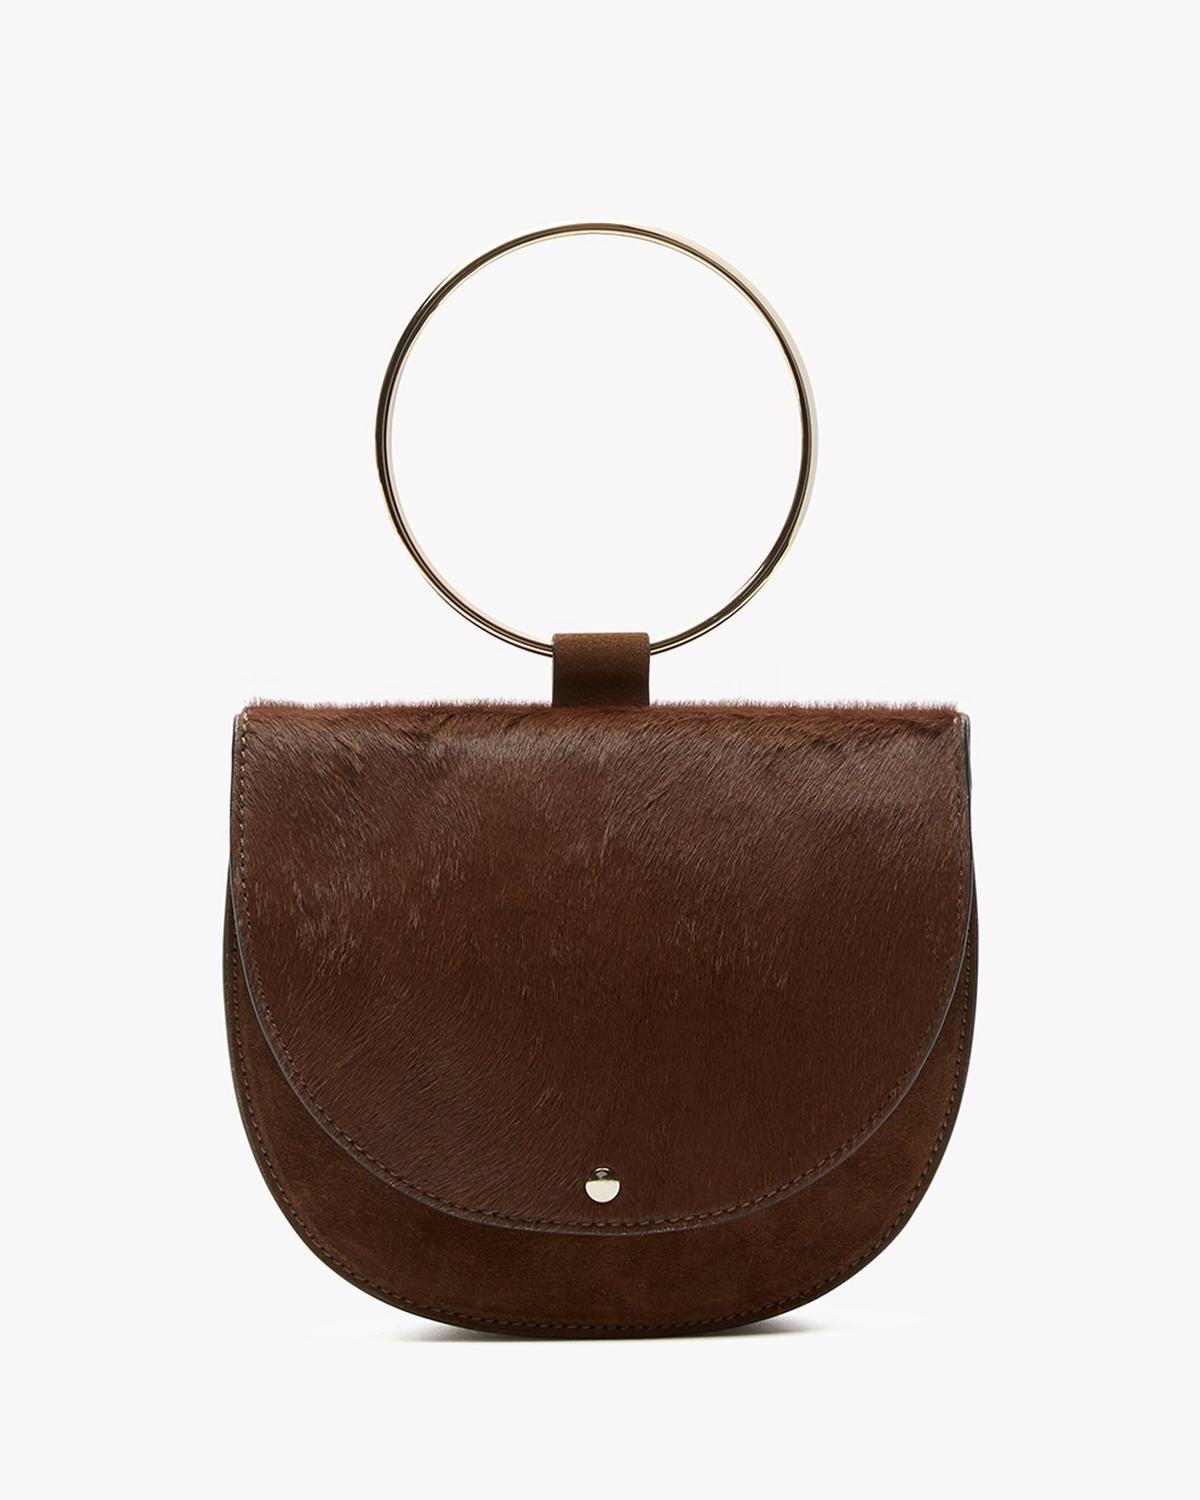 Whitney Hoop Bag in Calf Hair